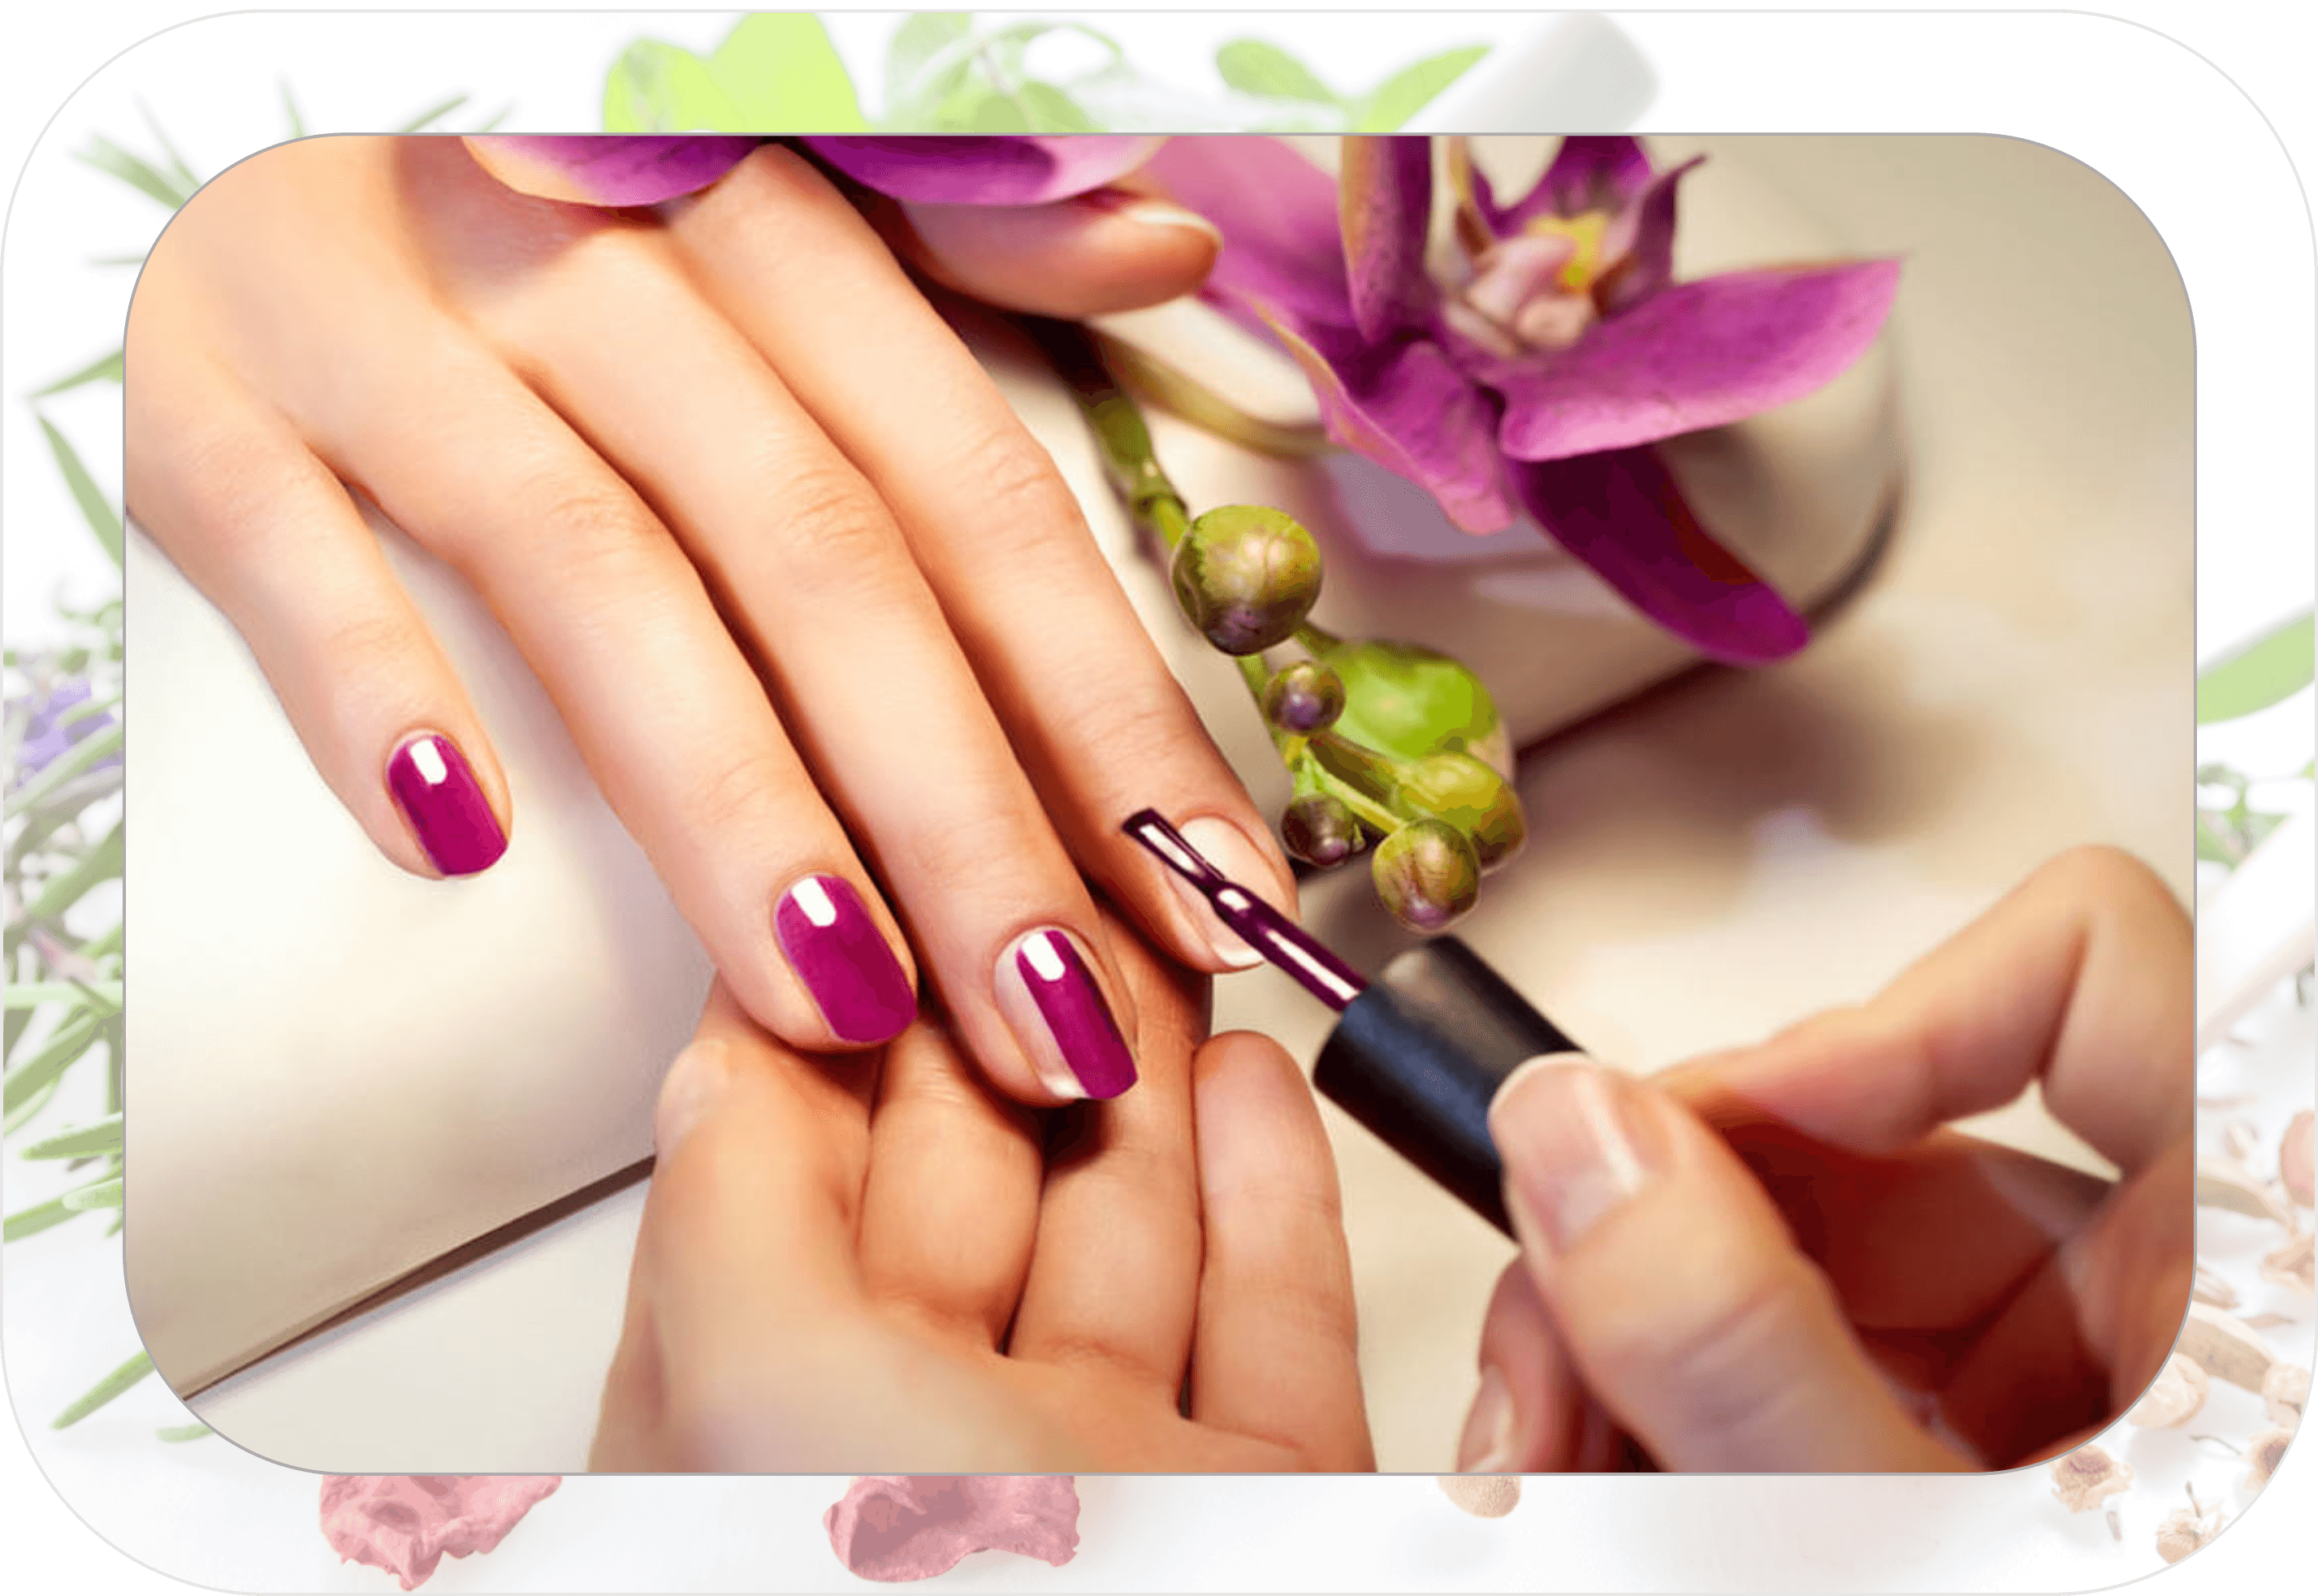 Gel soak off nail. Nails clipart french manicure